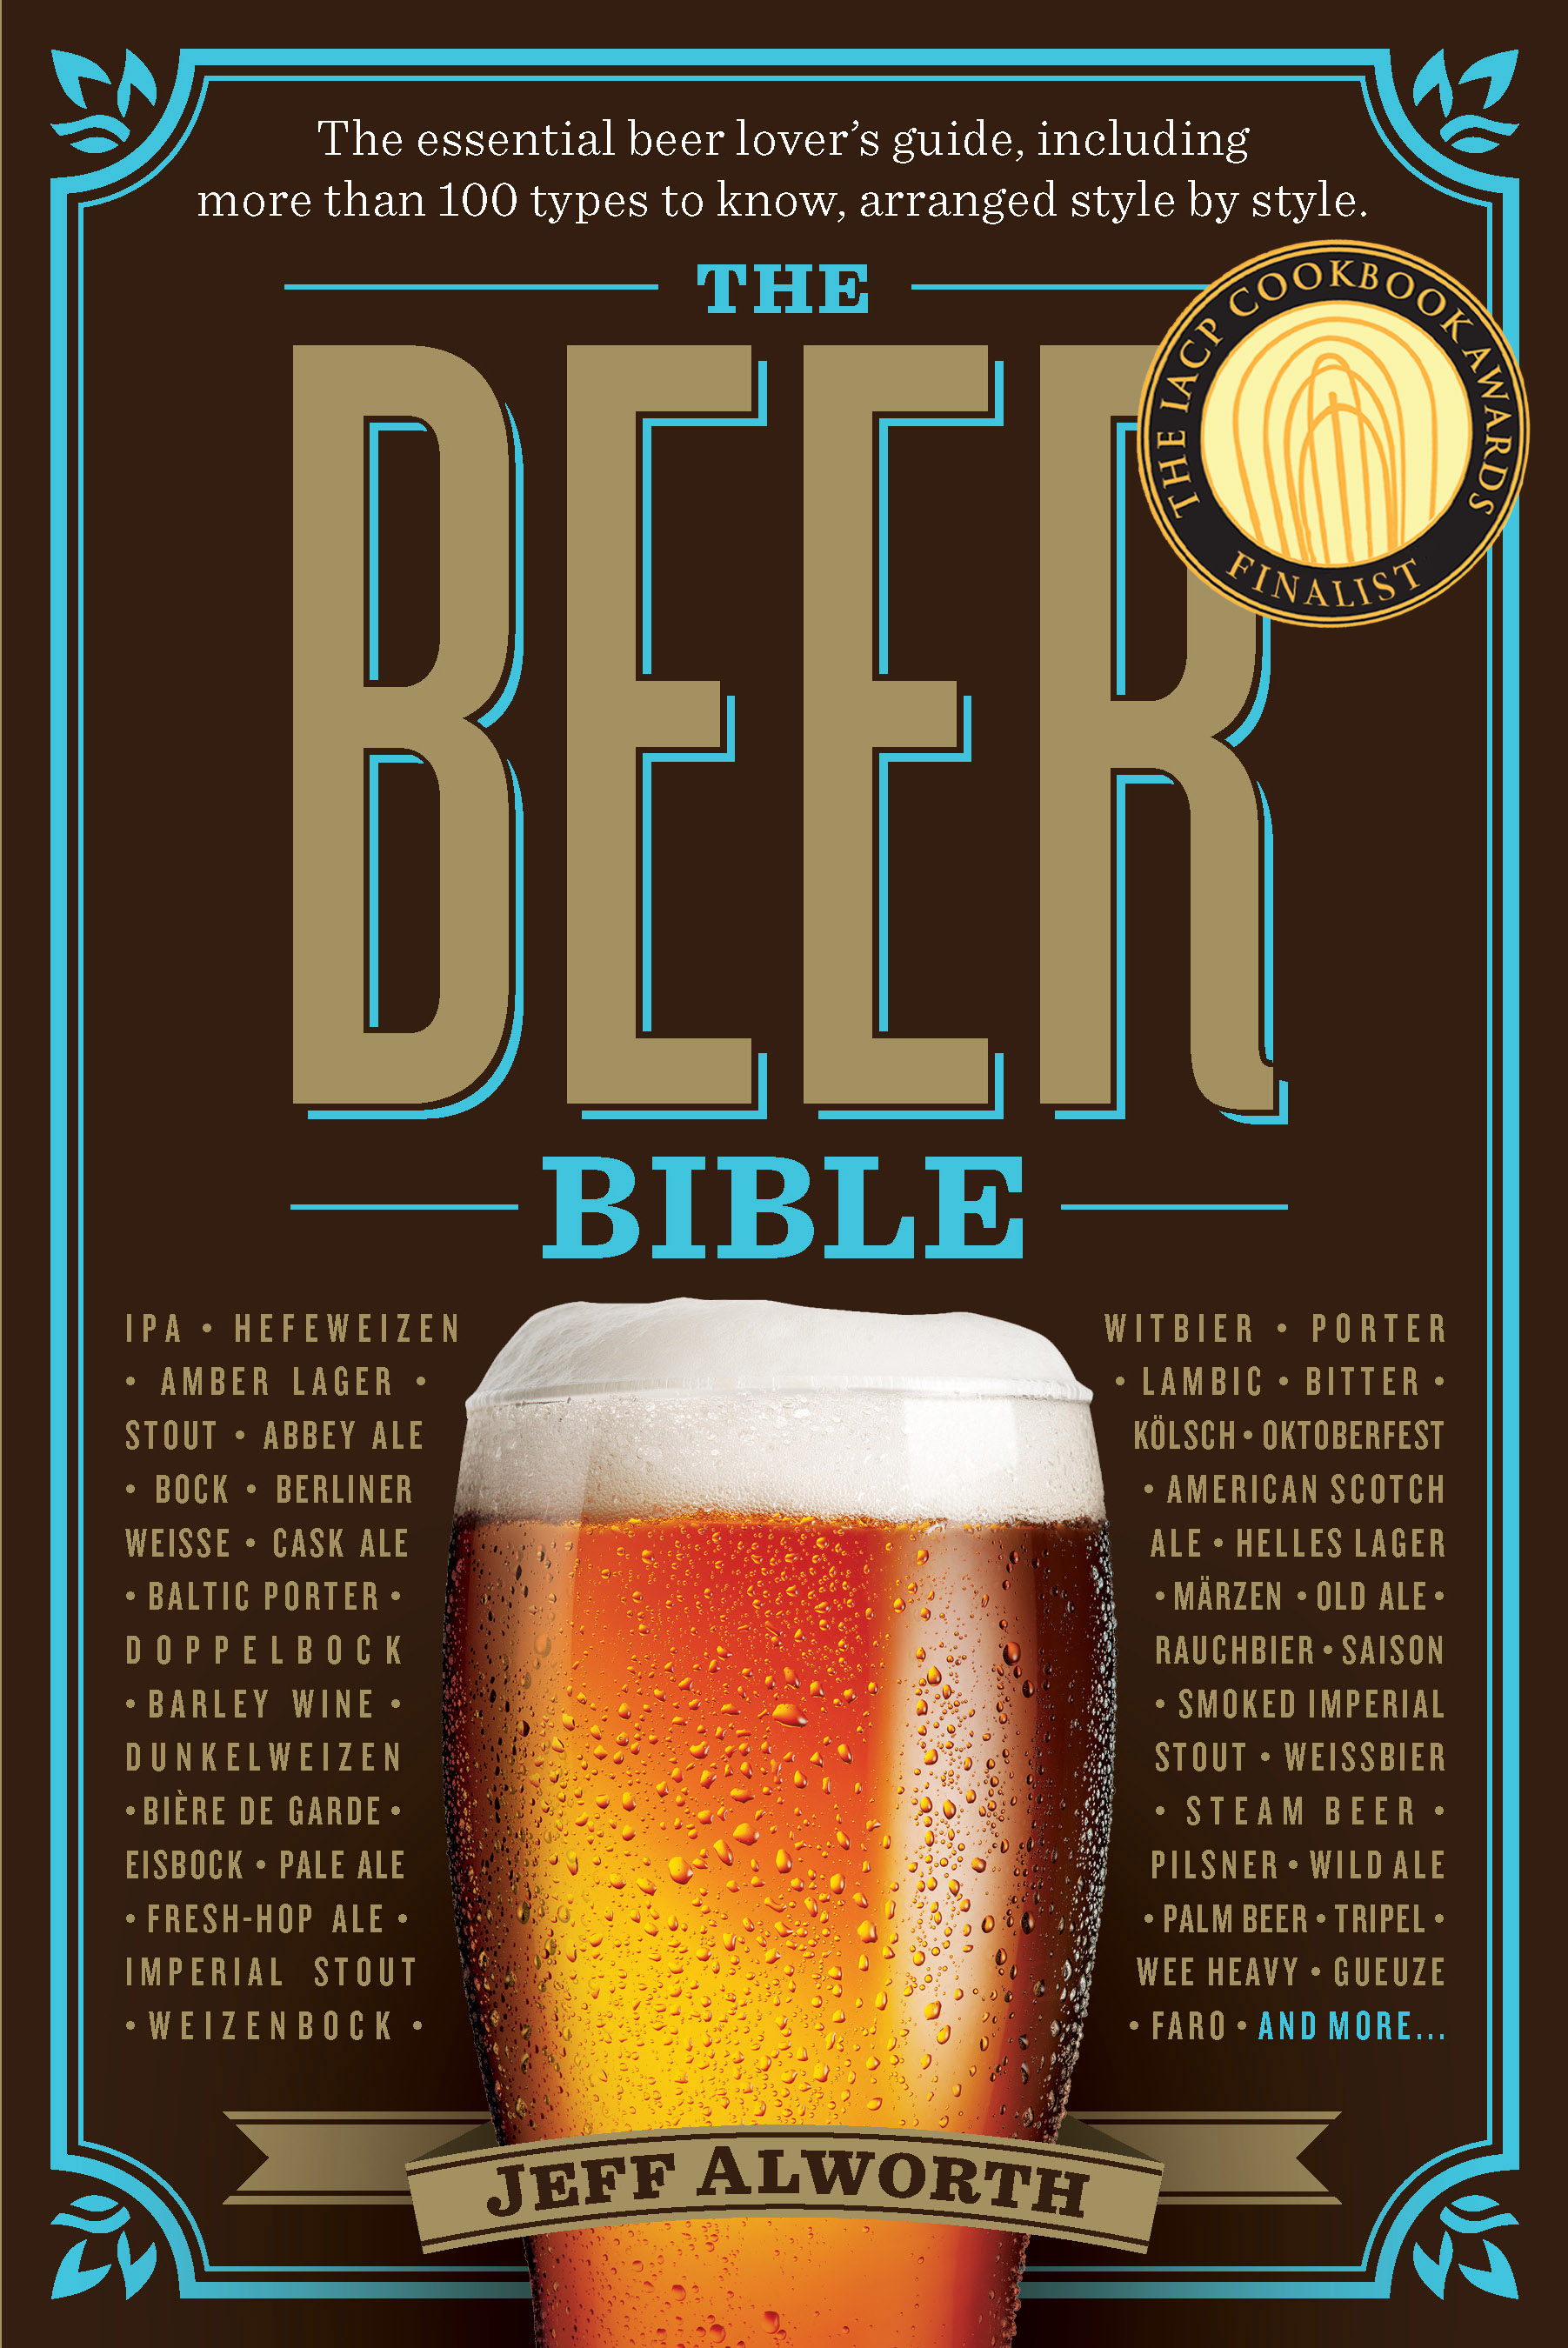 The Beer Bible The Essential Beer Lover's Guide